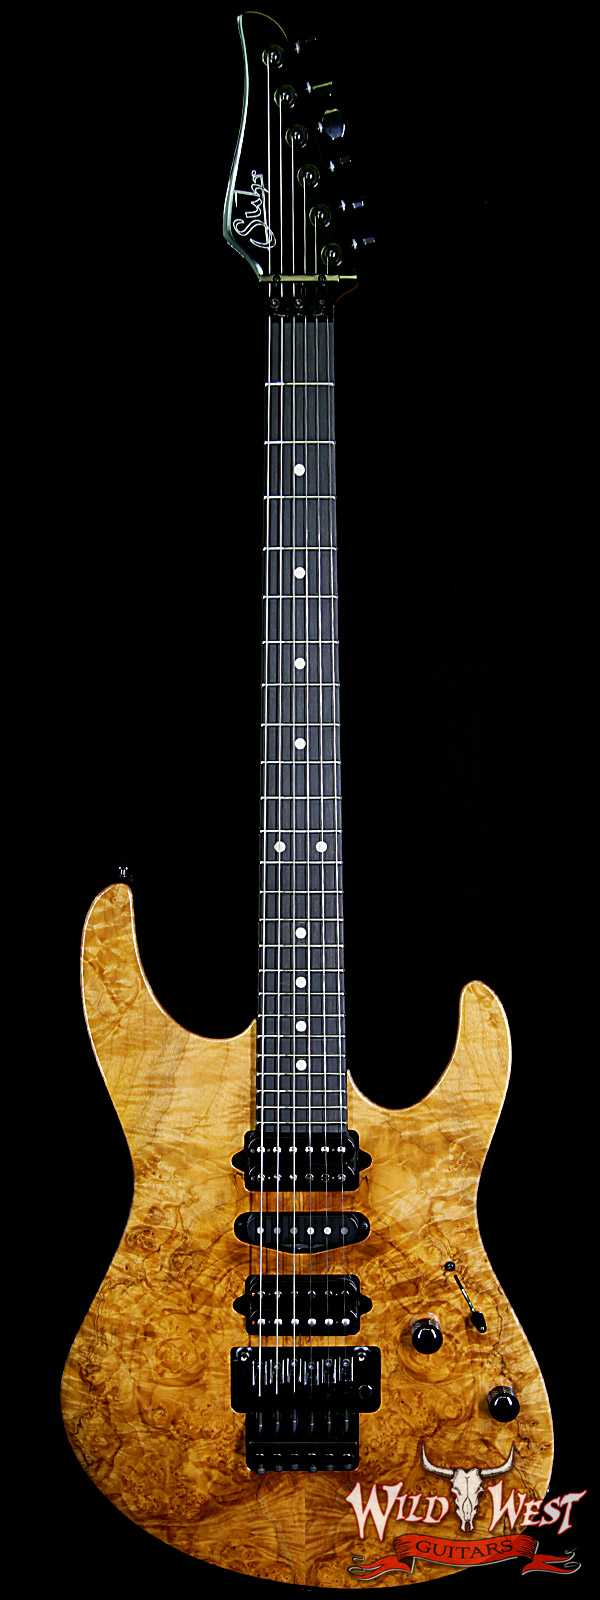 Suhr Modern HSH Floyd Hand Selected Burl Maple Top Roasted Maple Neck Ebony Board Reverse Head Natural